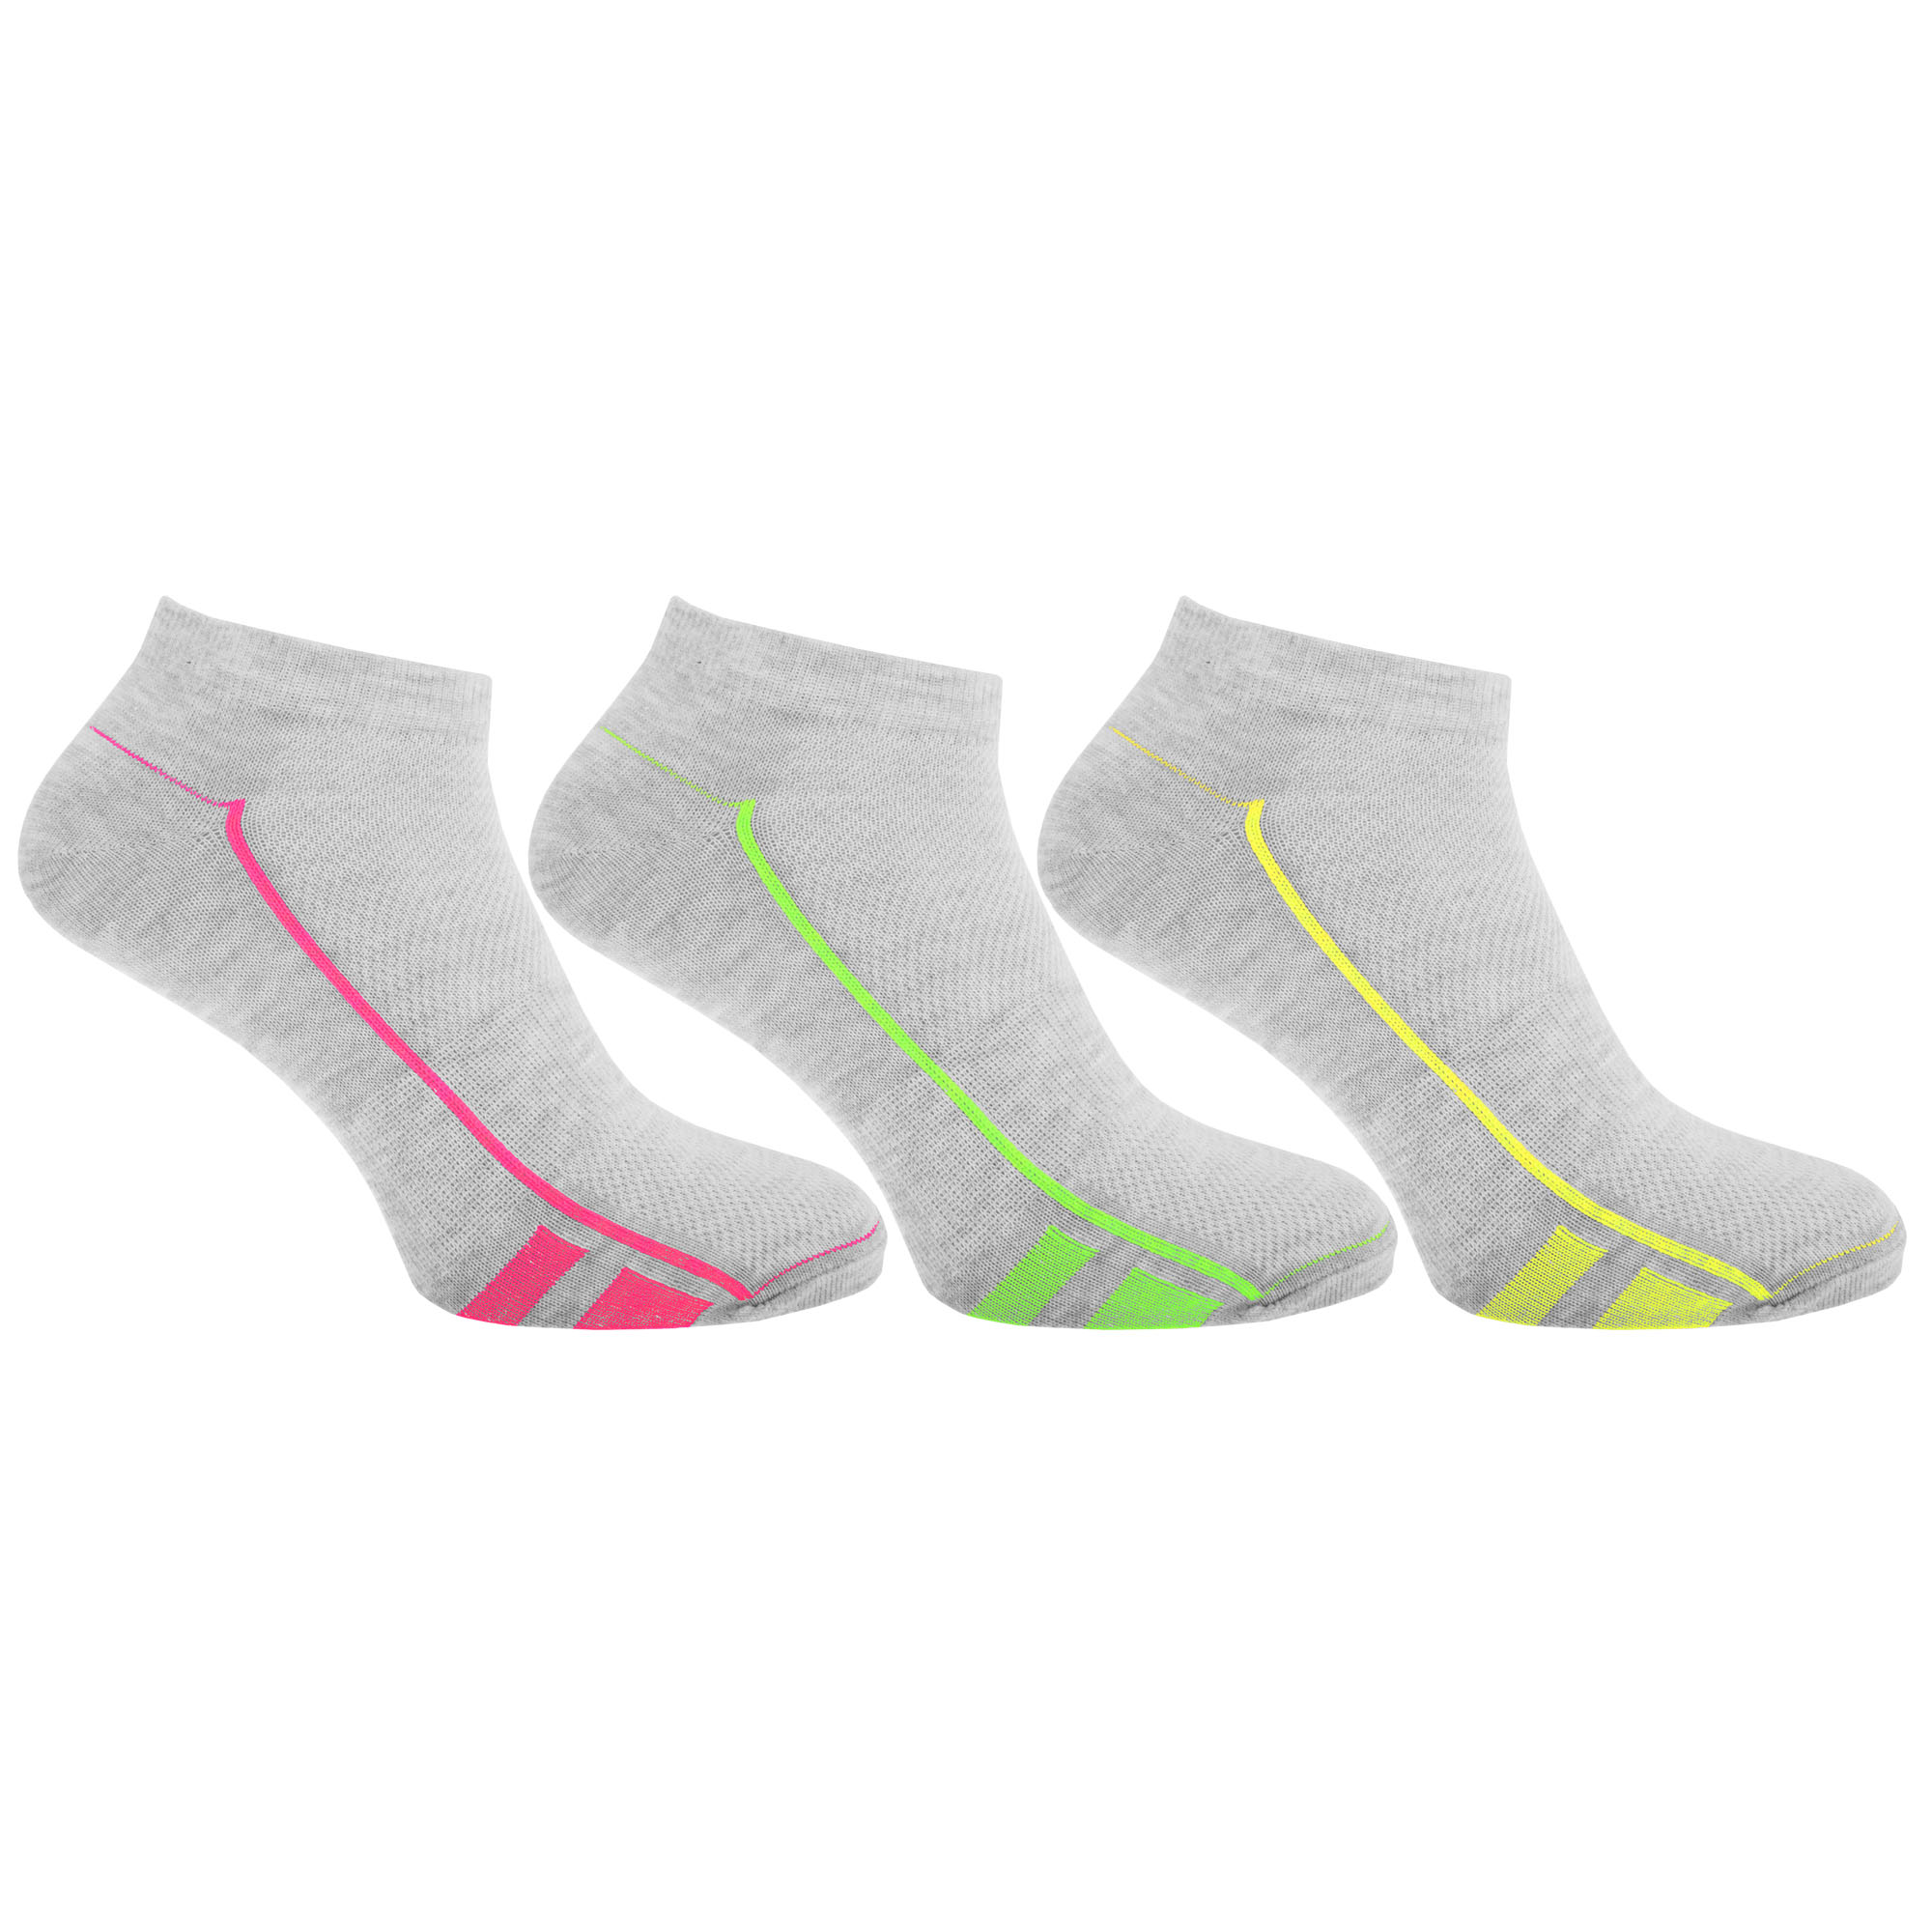 karrimor ladies trainer socks 1 pair ONLY. by Karrimor. £ + £ delivery. Show only Karrimor items. 5 out of 5 stars 5. Pair Karrimor Womens Running Trainer Ankle Socks Ladies Size x 11 Colours (Turquoise/Fusch) by Karrimor. £ + £ delivery. Show only Karrimor items.